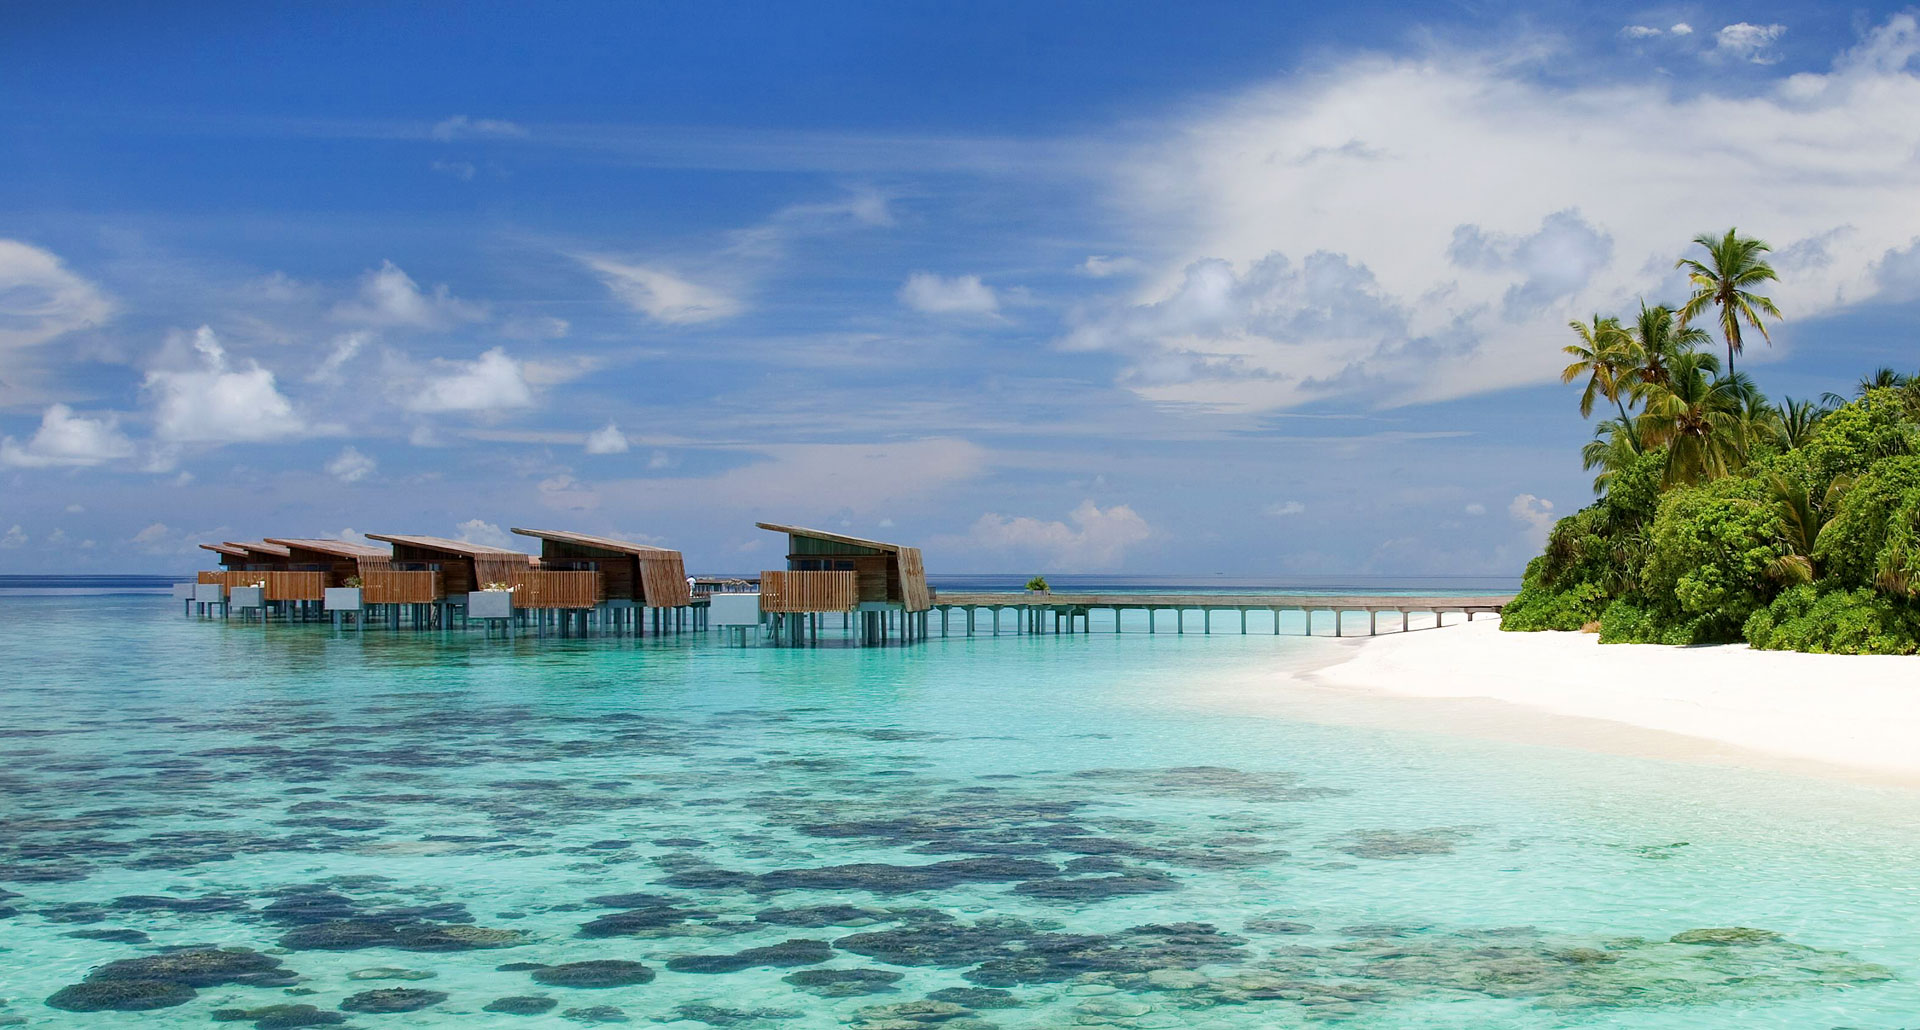 Park Hyatt Maldives Hadahaa - boutique hotel in the Maldives